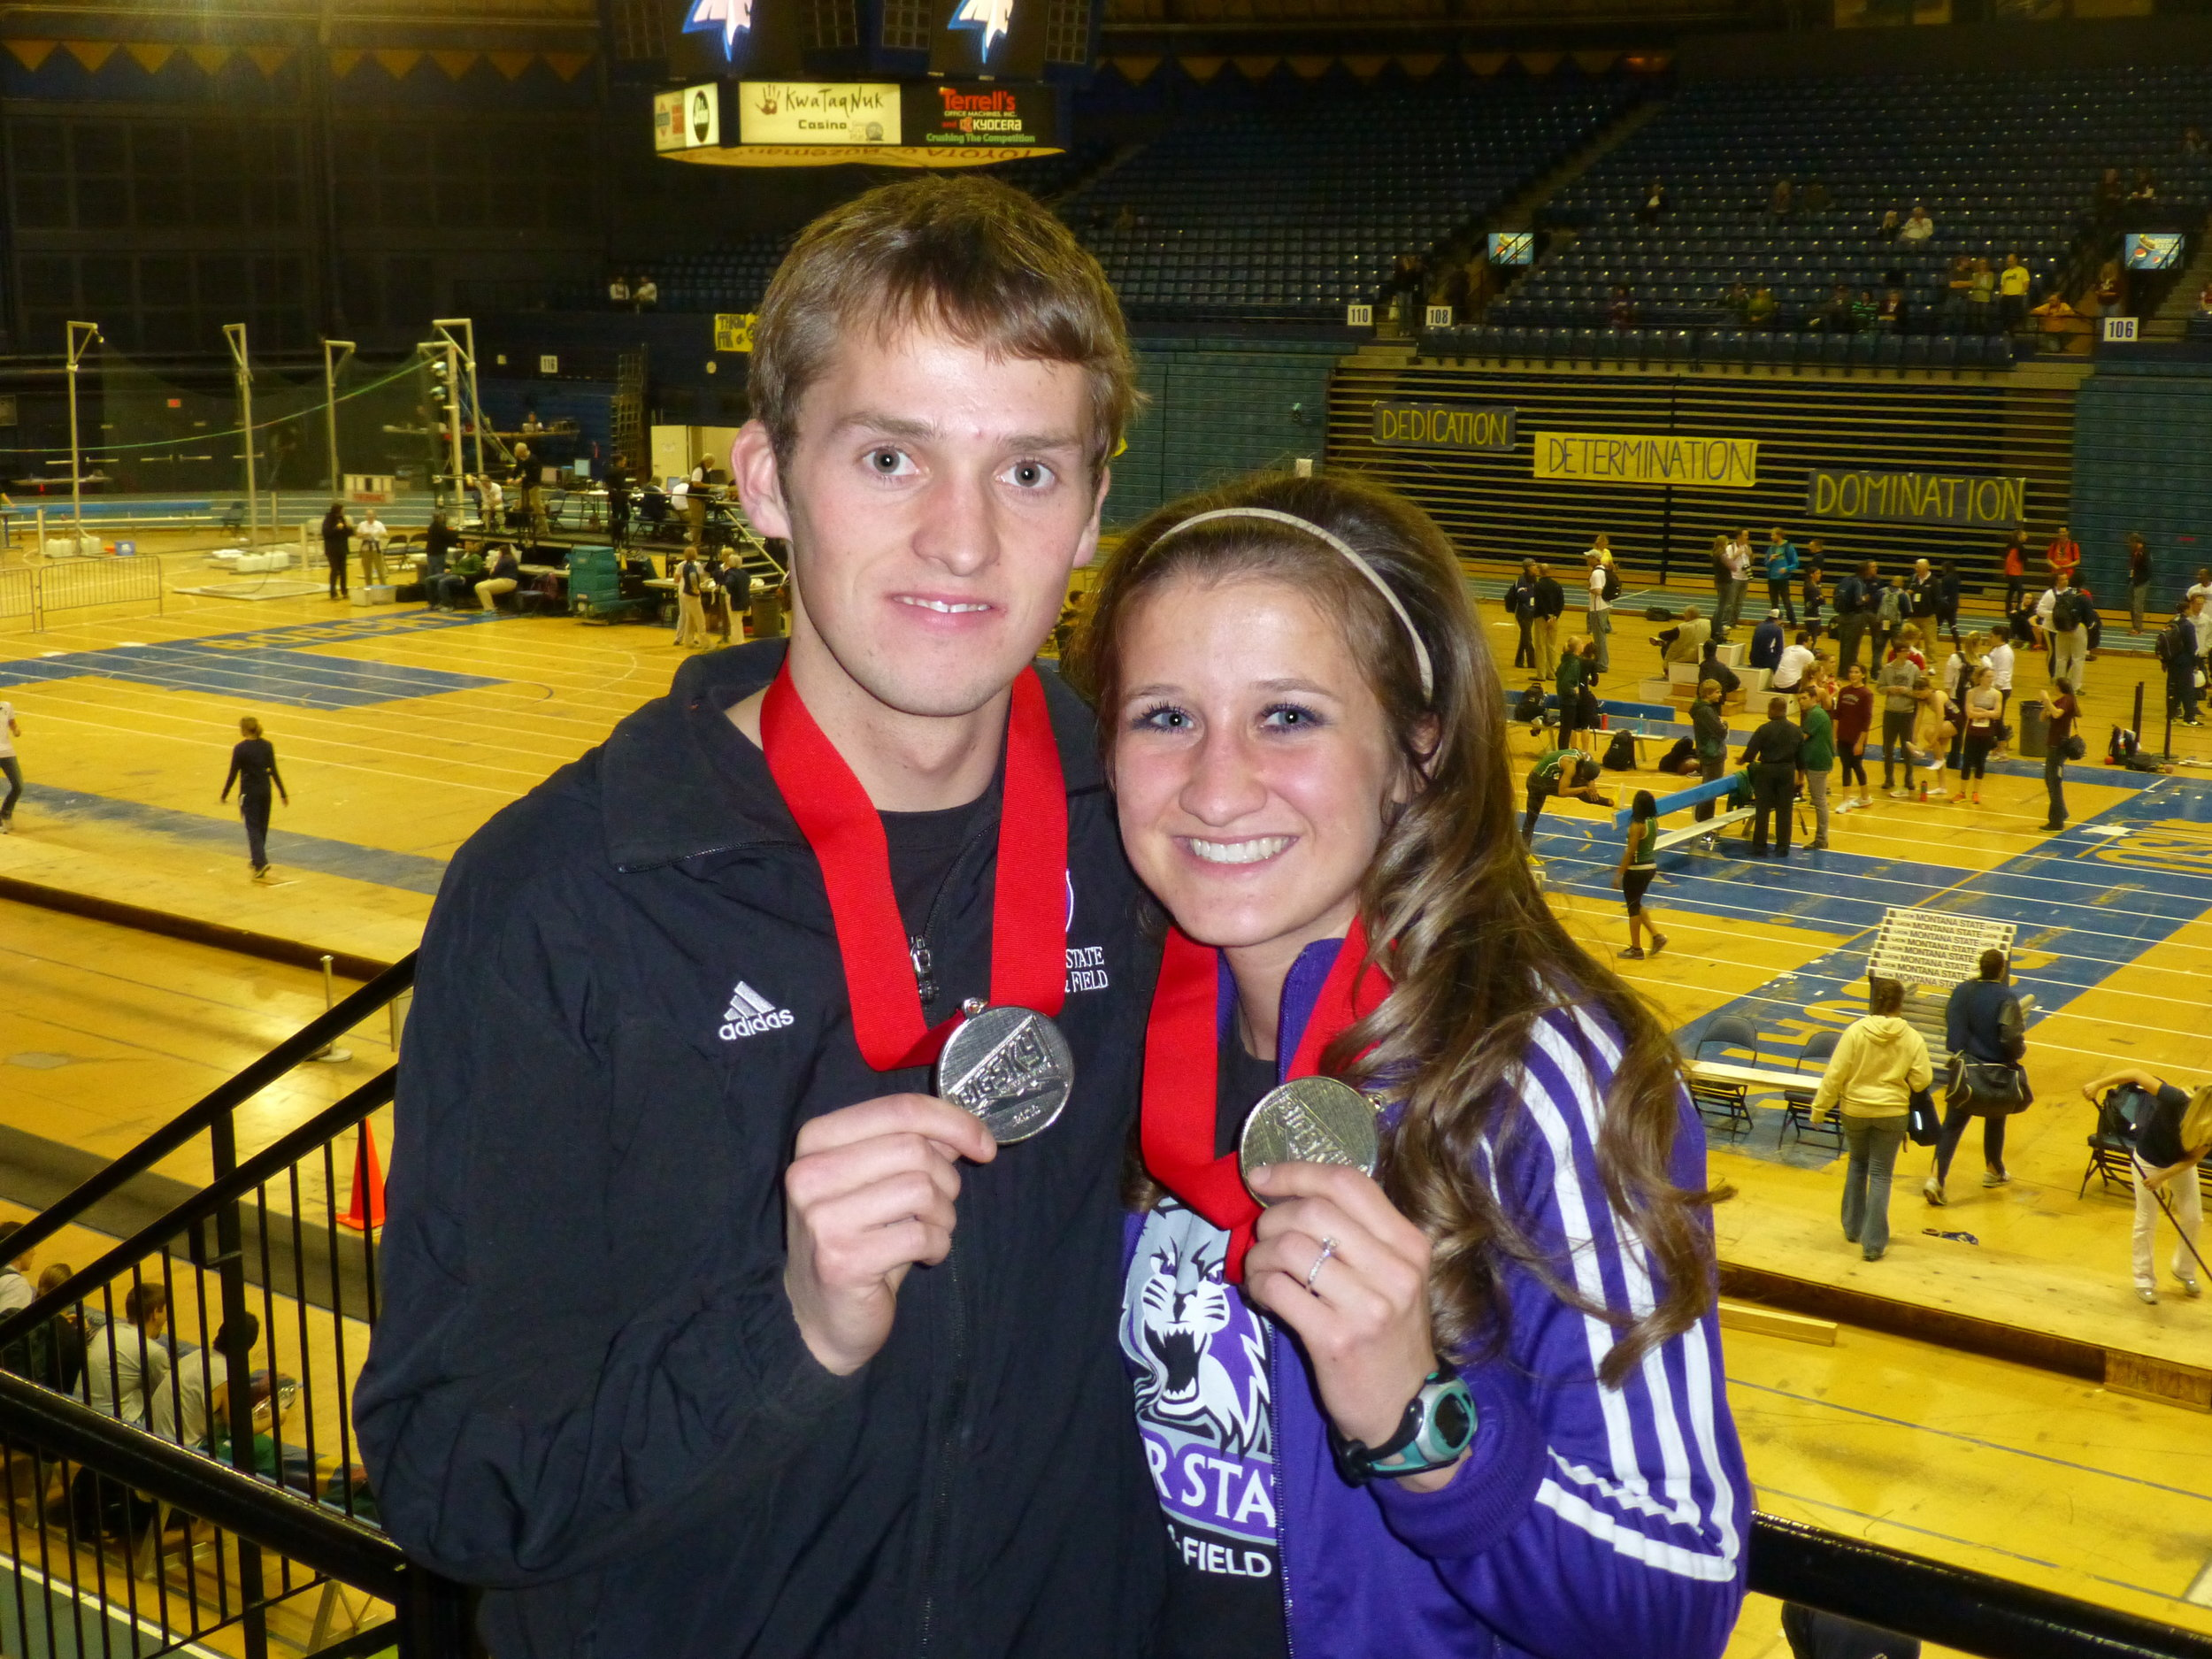 Kurt and I met at Weber State University.  We were on the Track and XC teams together!  Our love for each other and running has made our life together quite amazing!